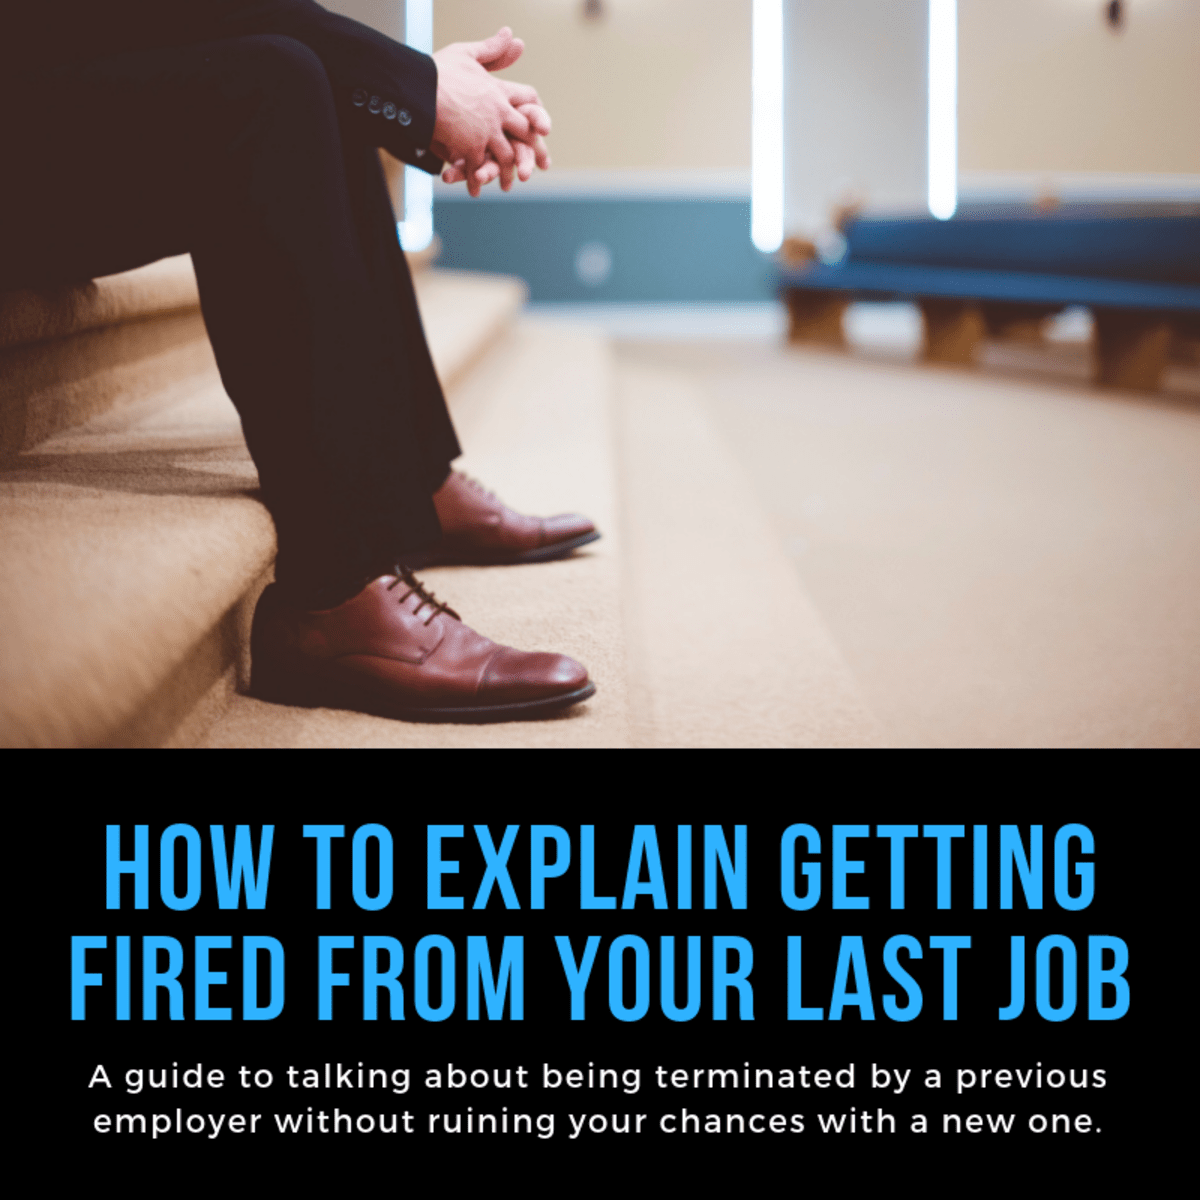 Lying On Resume Legal Consequences How To Explain A Past Job Termination On A Resume Application